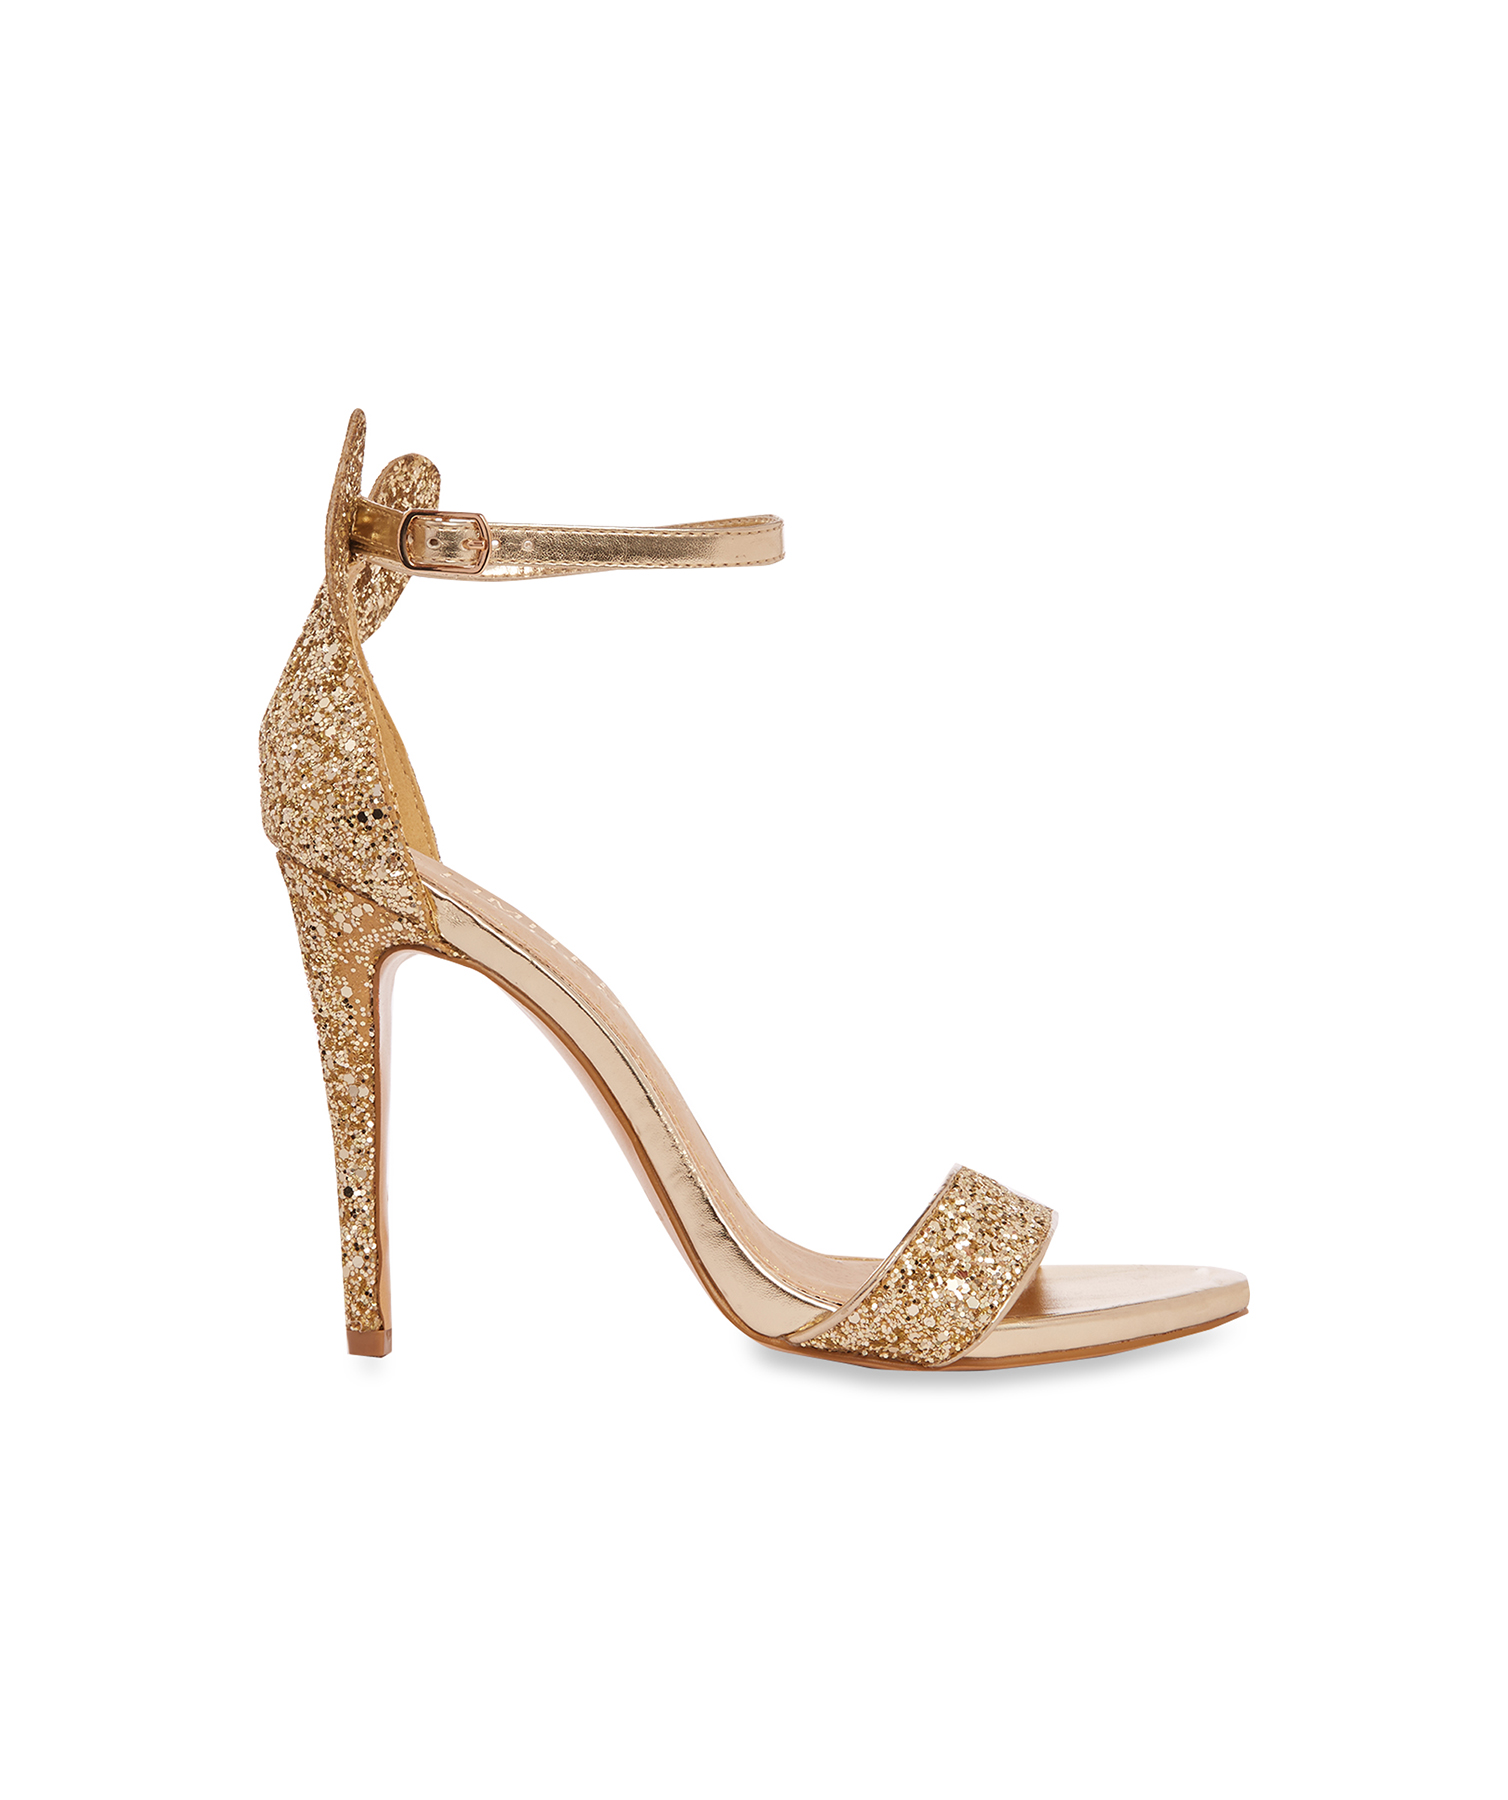 Gold Minnie Mouse Heels